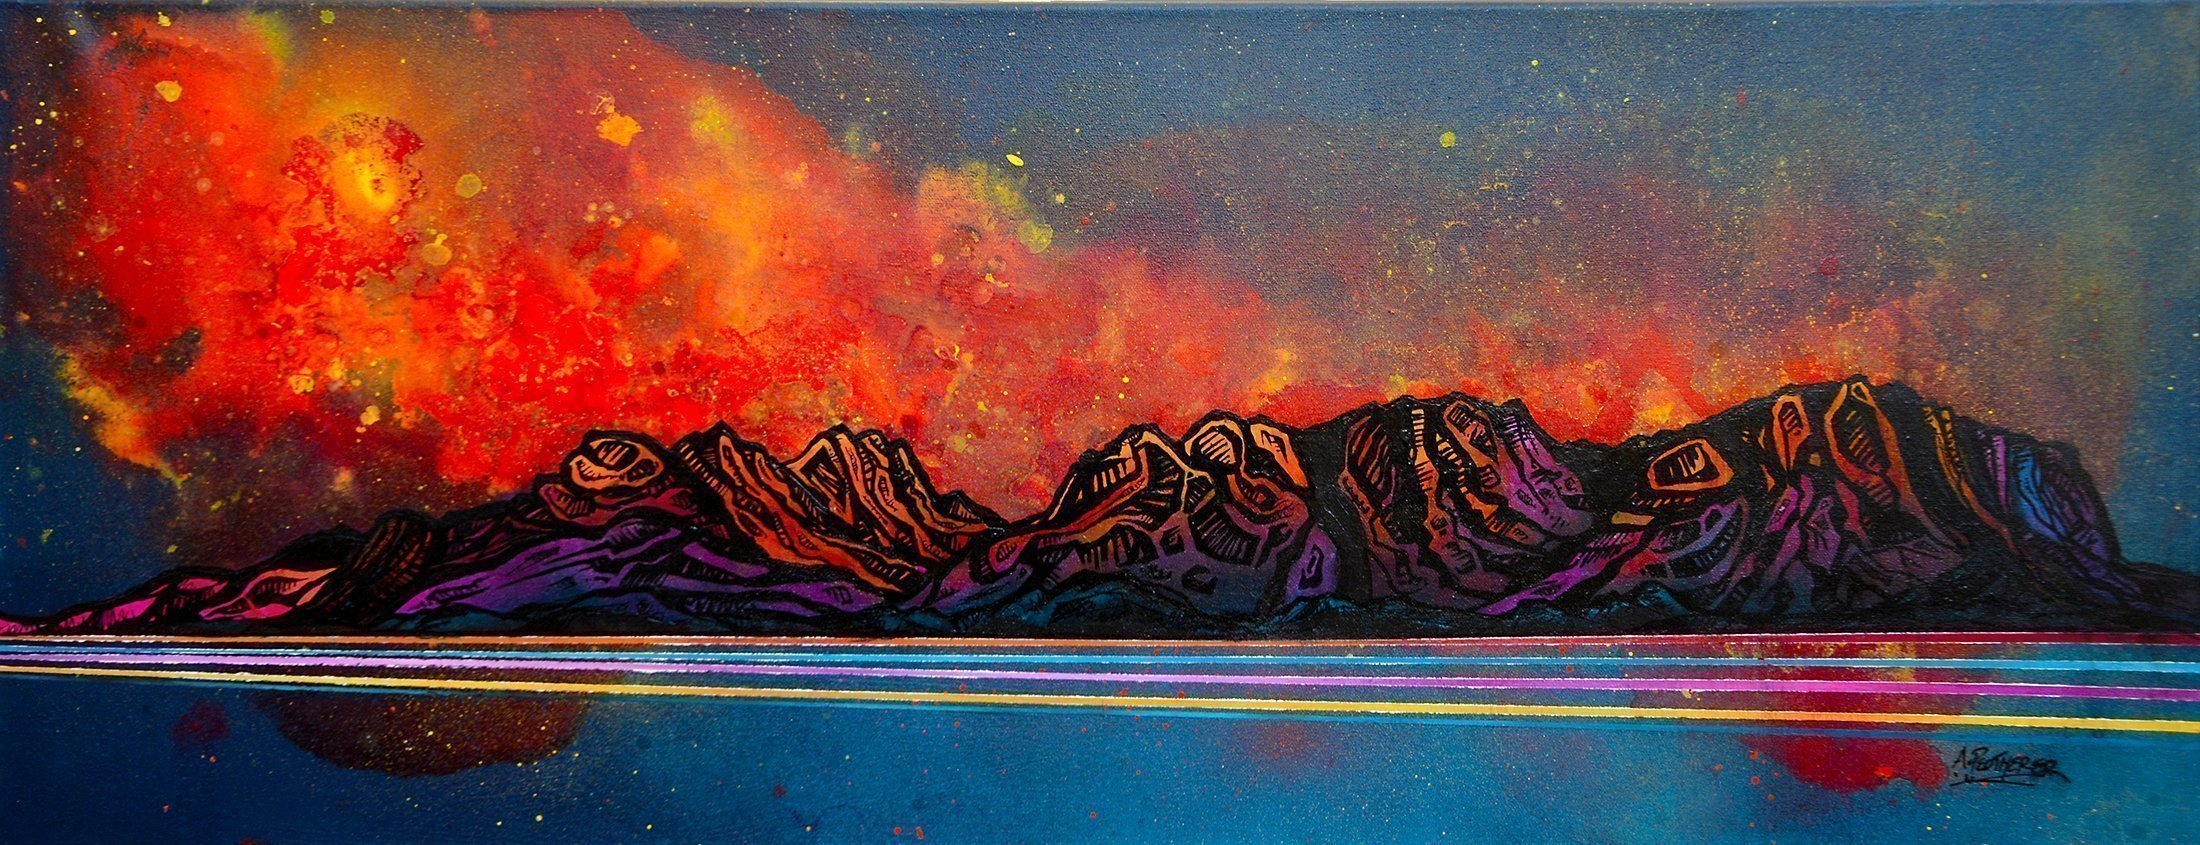 Torridon, Liathach & Allign - Scottish Painting & Prints